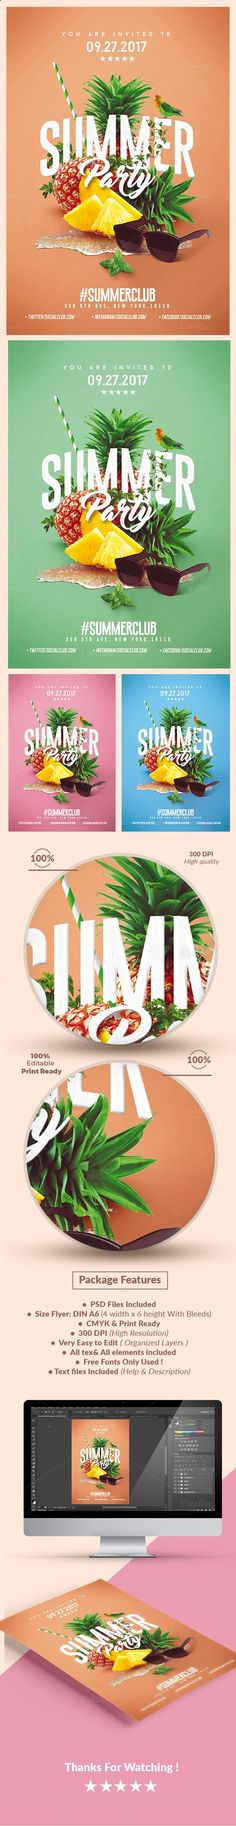 Summer Party | Psd Flyer Template 4 by Creative Flyers on Creative Market…